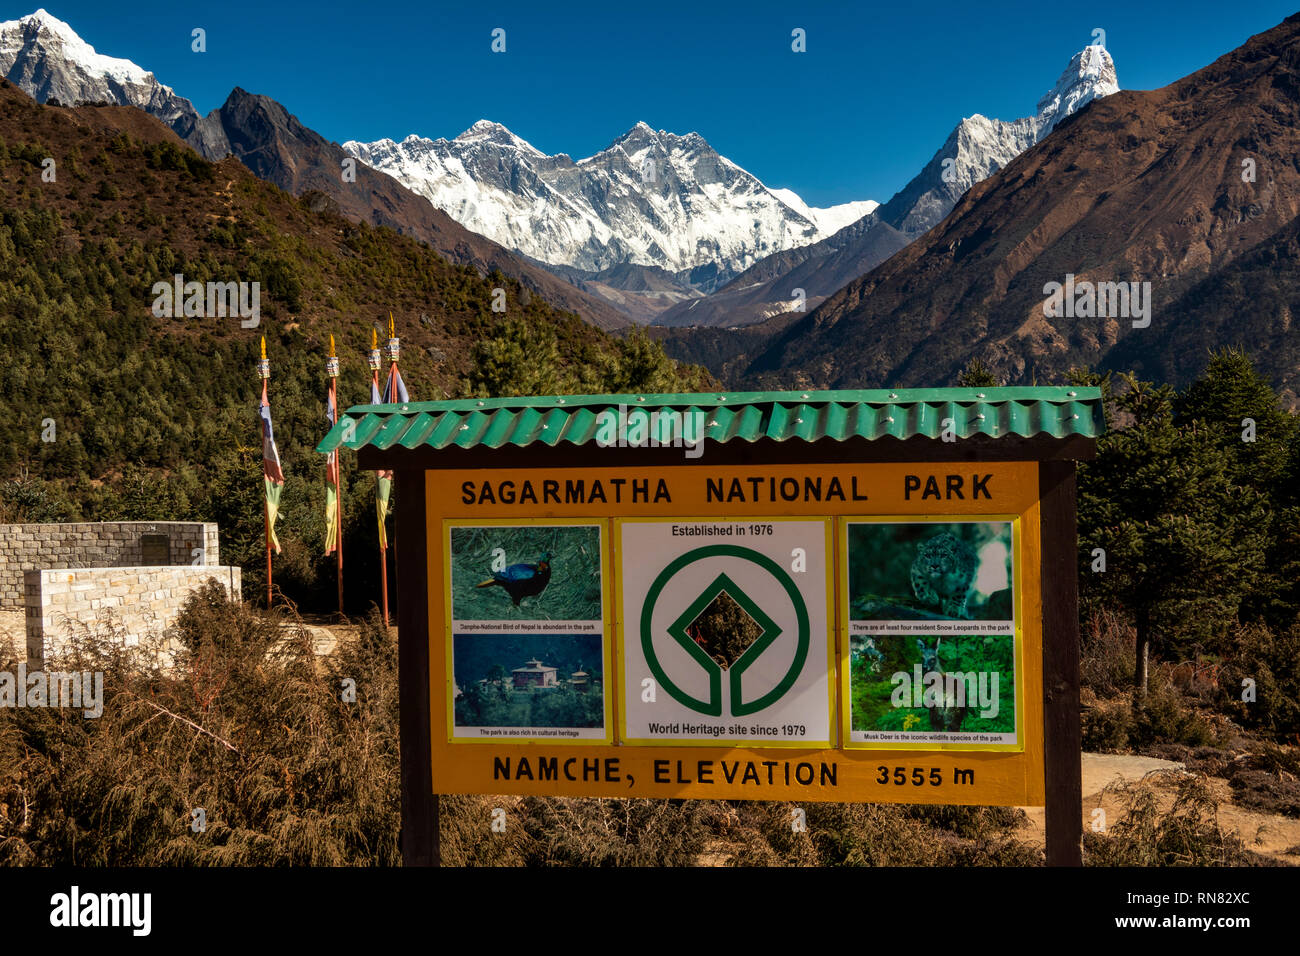 Nepal, Namche Bazaar, Sagarmatha National Park, Visitor Centre, sign at 3555 metres elevation, in front of view of Mount Everest - Stock Image